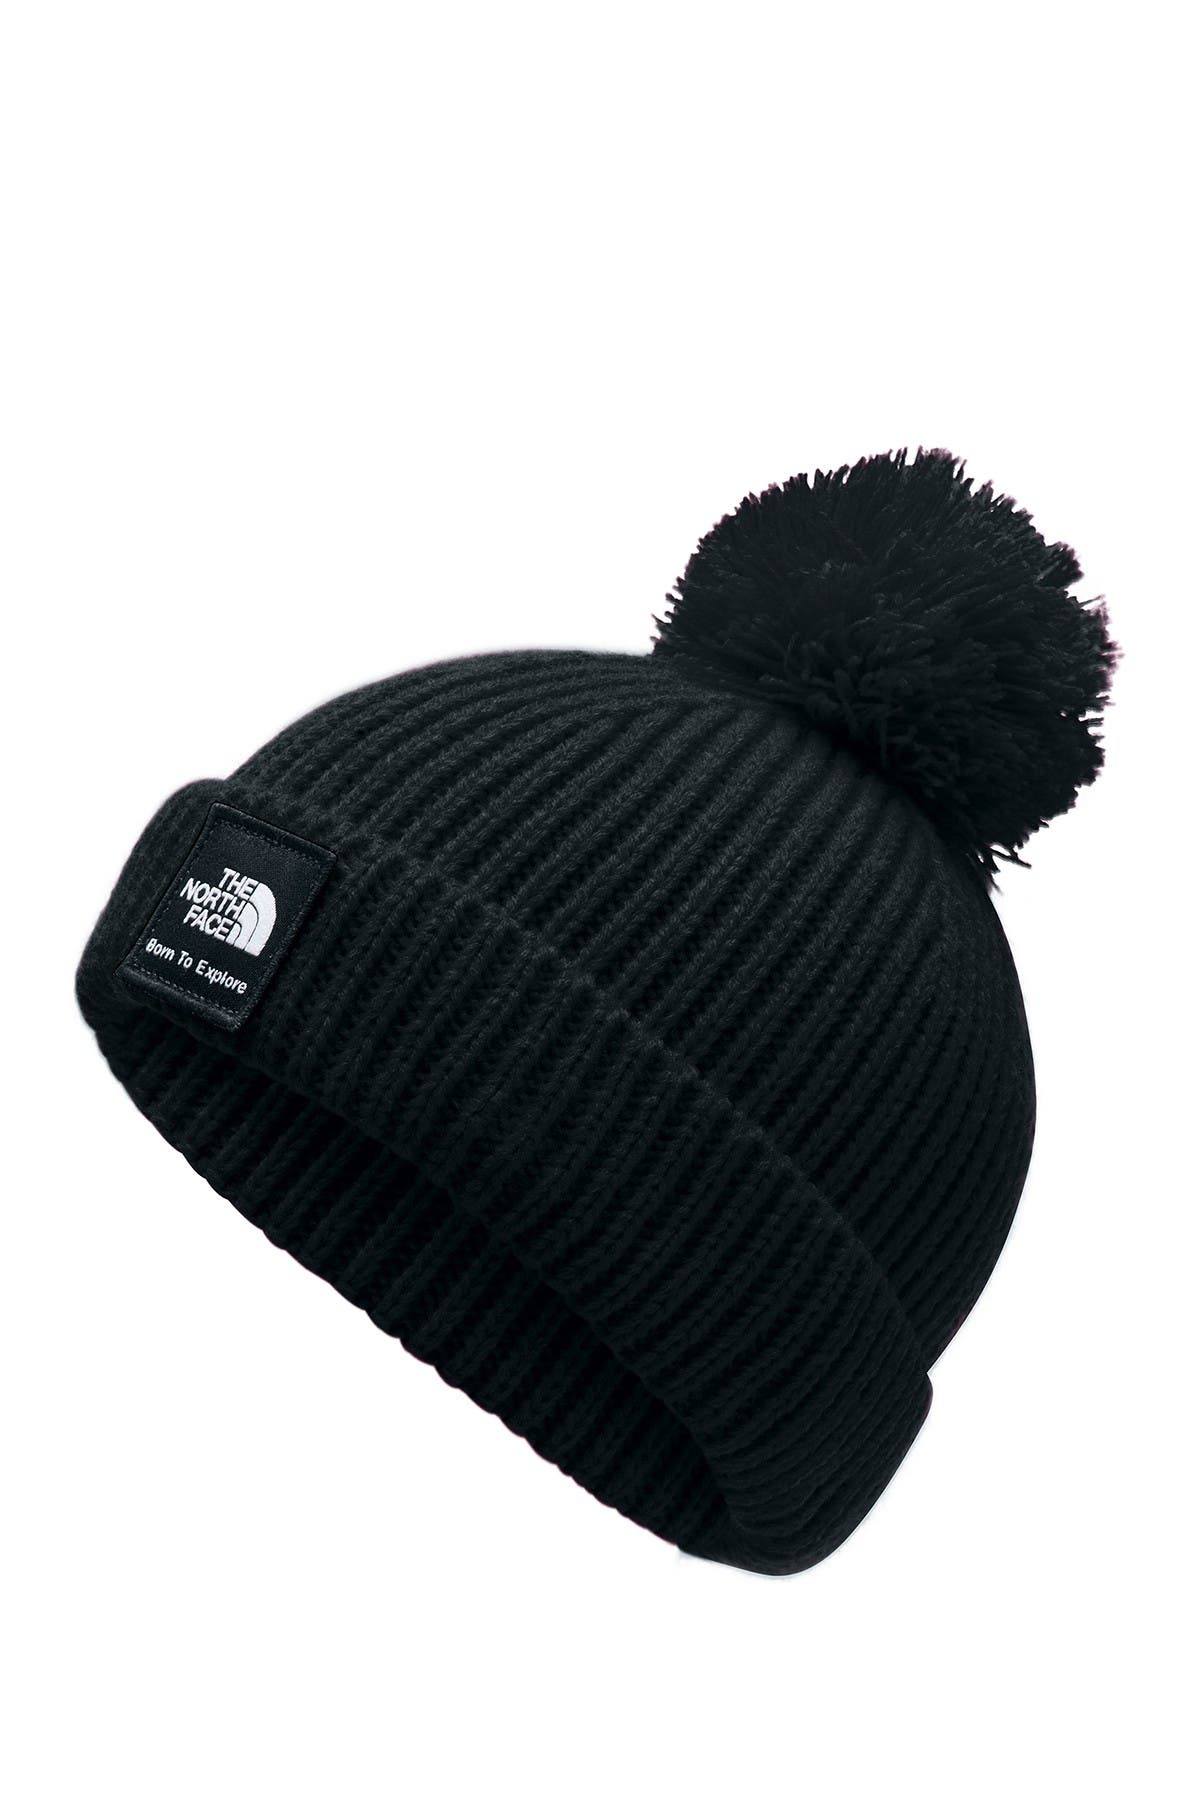 Image of The North Face Box Logo Pompom Beanie